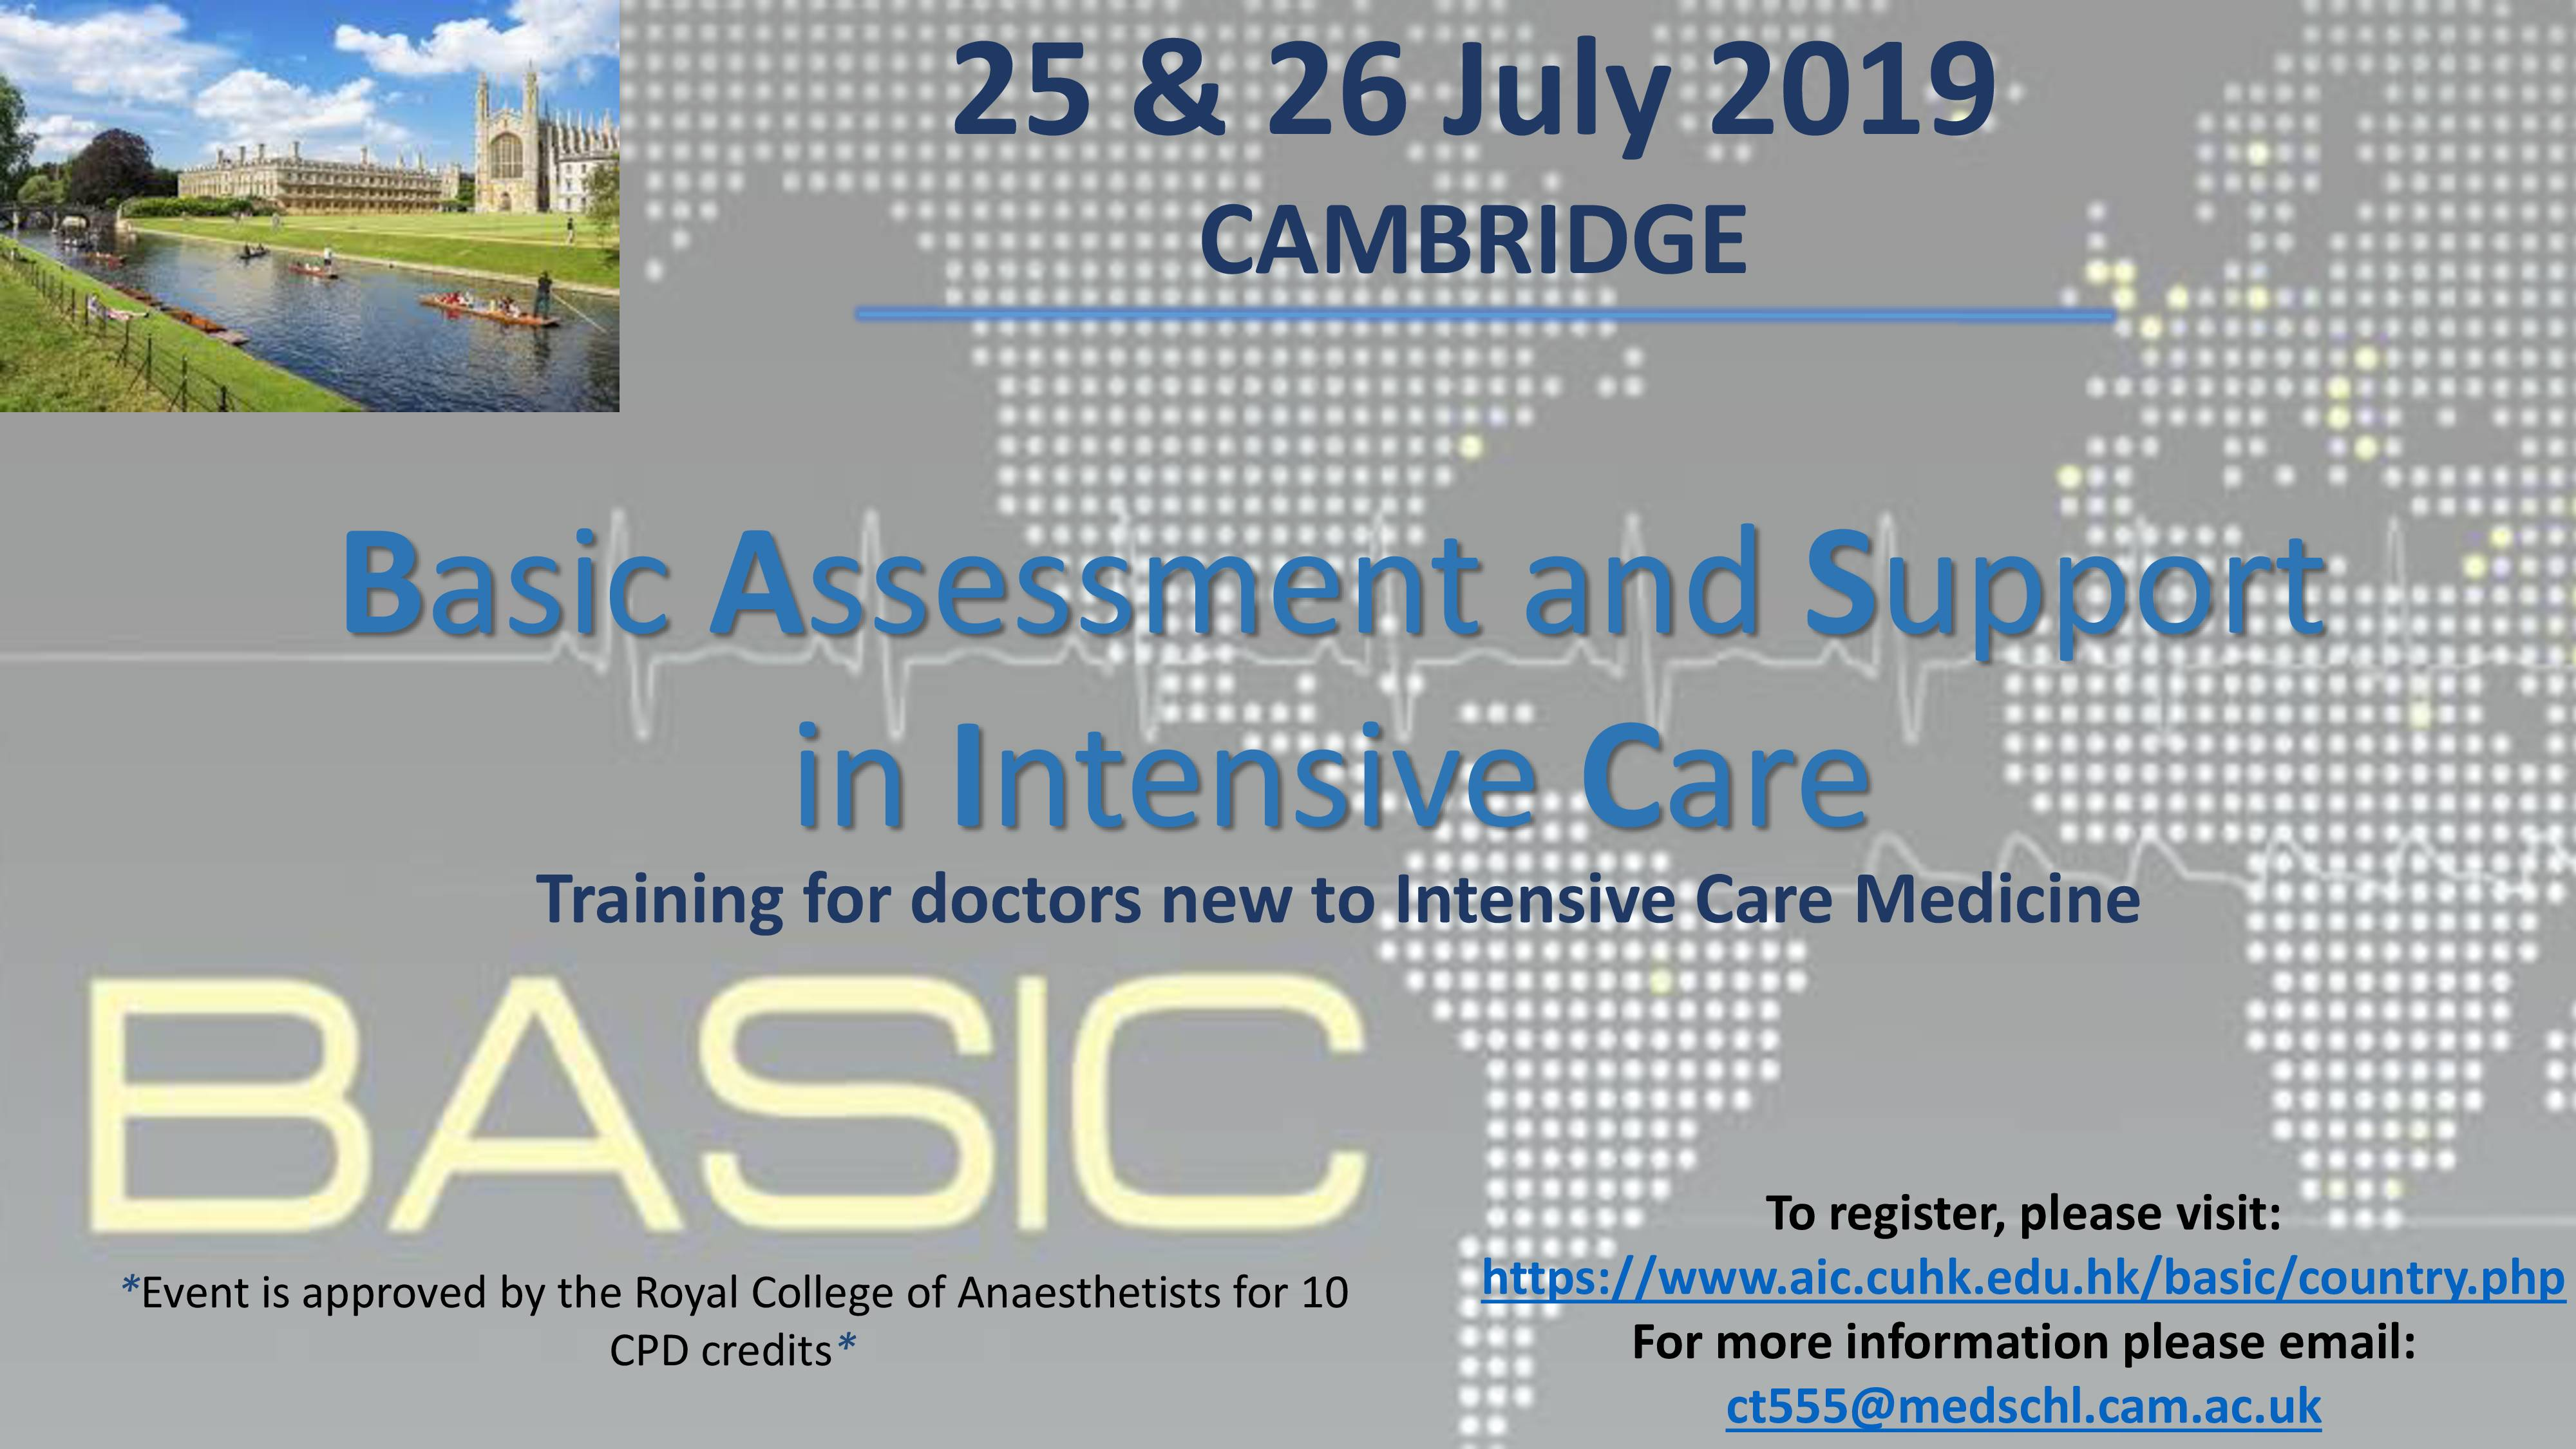 Basic Assessment and Support in Intensive Care (BASIC) 2019